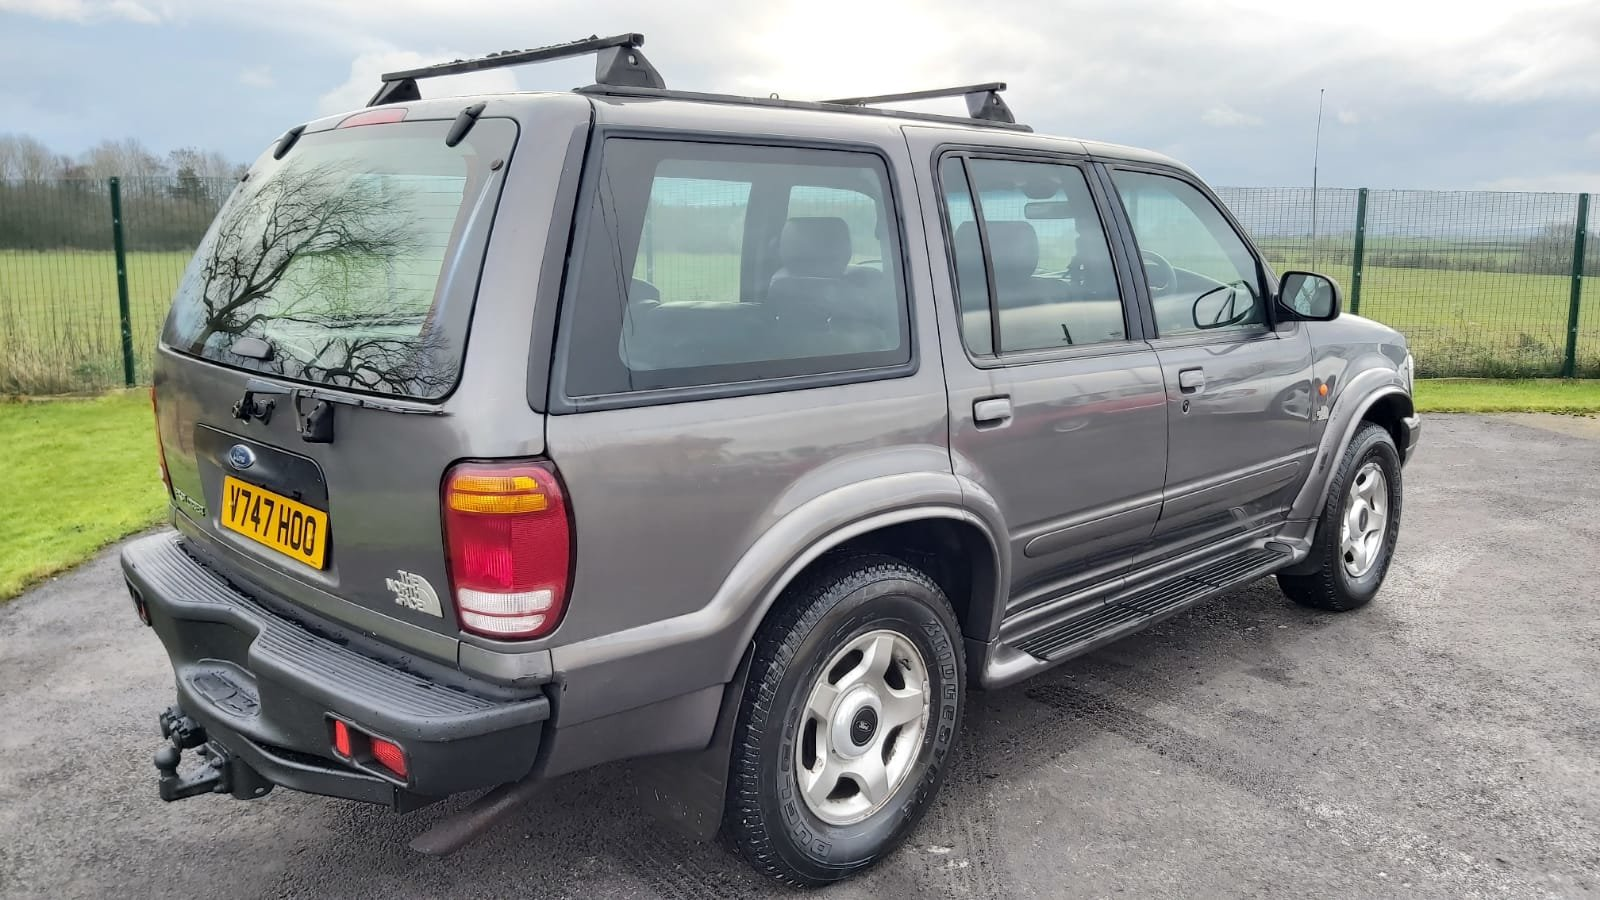 1999 FORD EXPLORER 4.0 AUTOMATIC LIMITED EDITION THE NORTH FACE For Sale (picture 2 of 6)